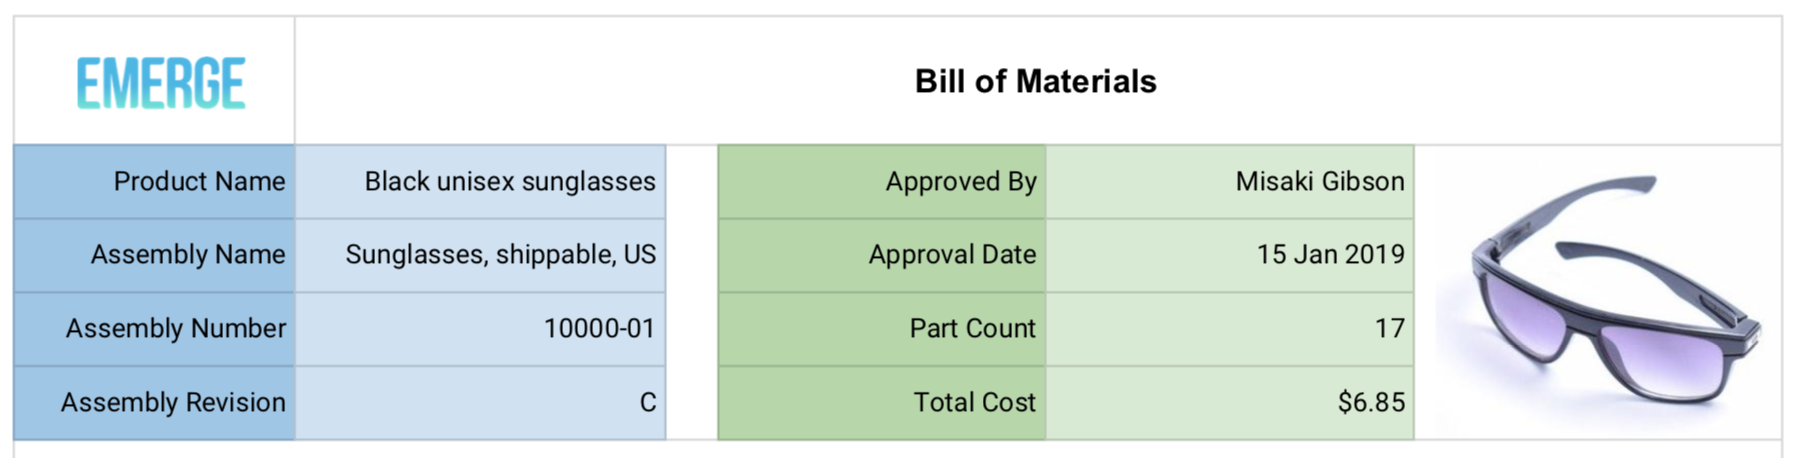 A Bill of Materials Template for Manufacturers   EMERGE App